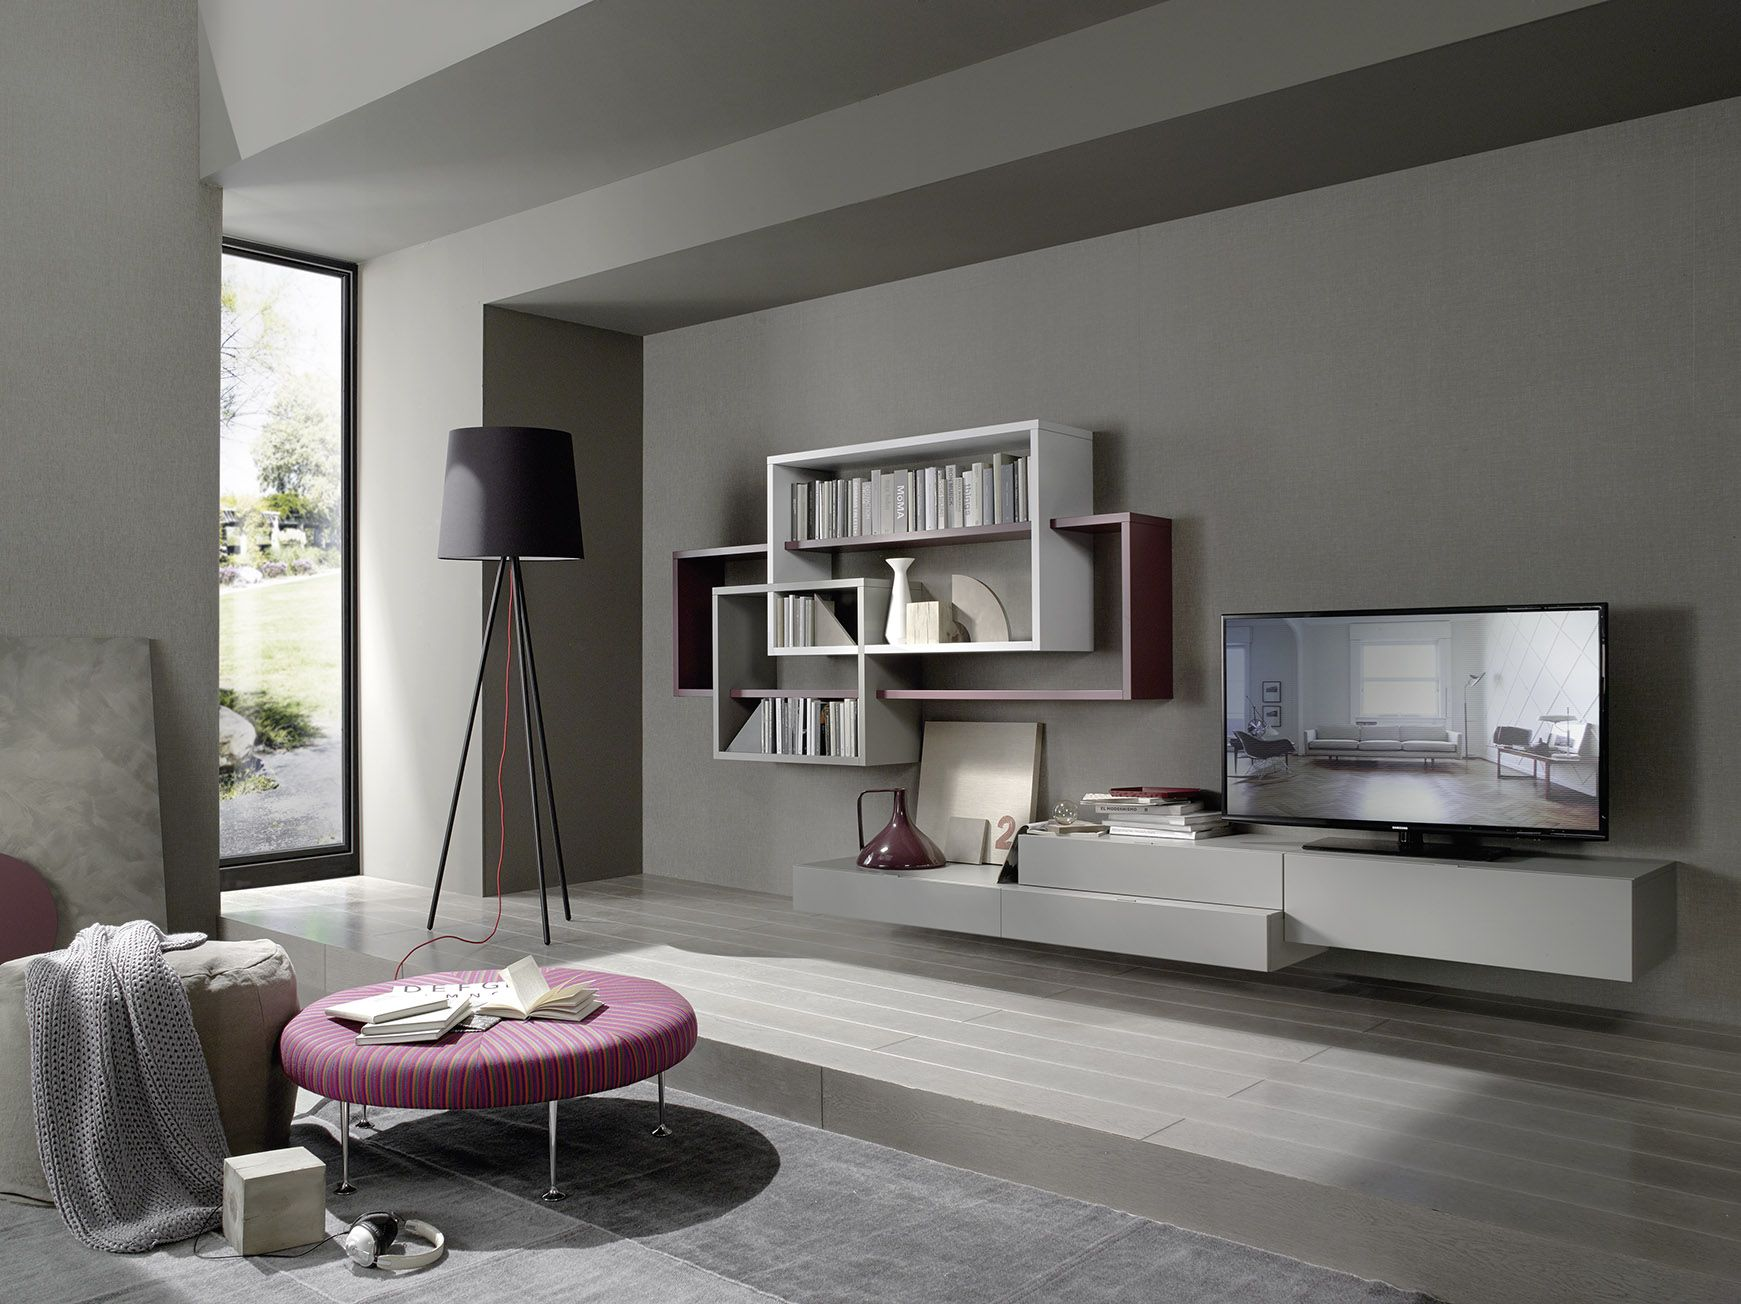 This Kronos S60 Multimedia Unit Has Freely Positioned Shelves Of  # Bitacora Muebles